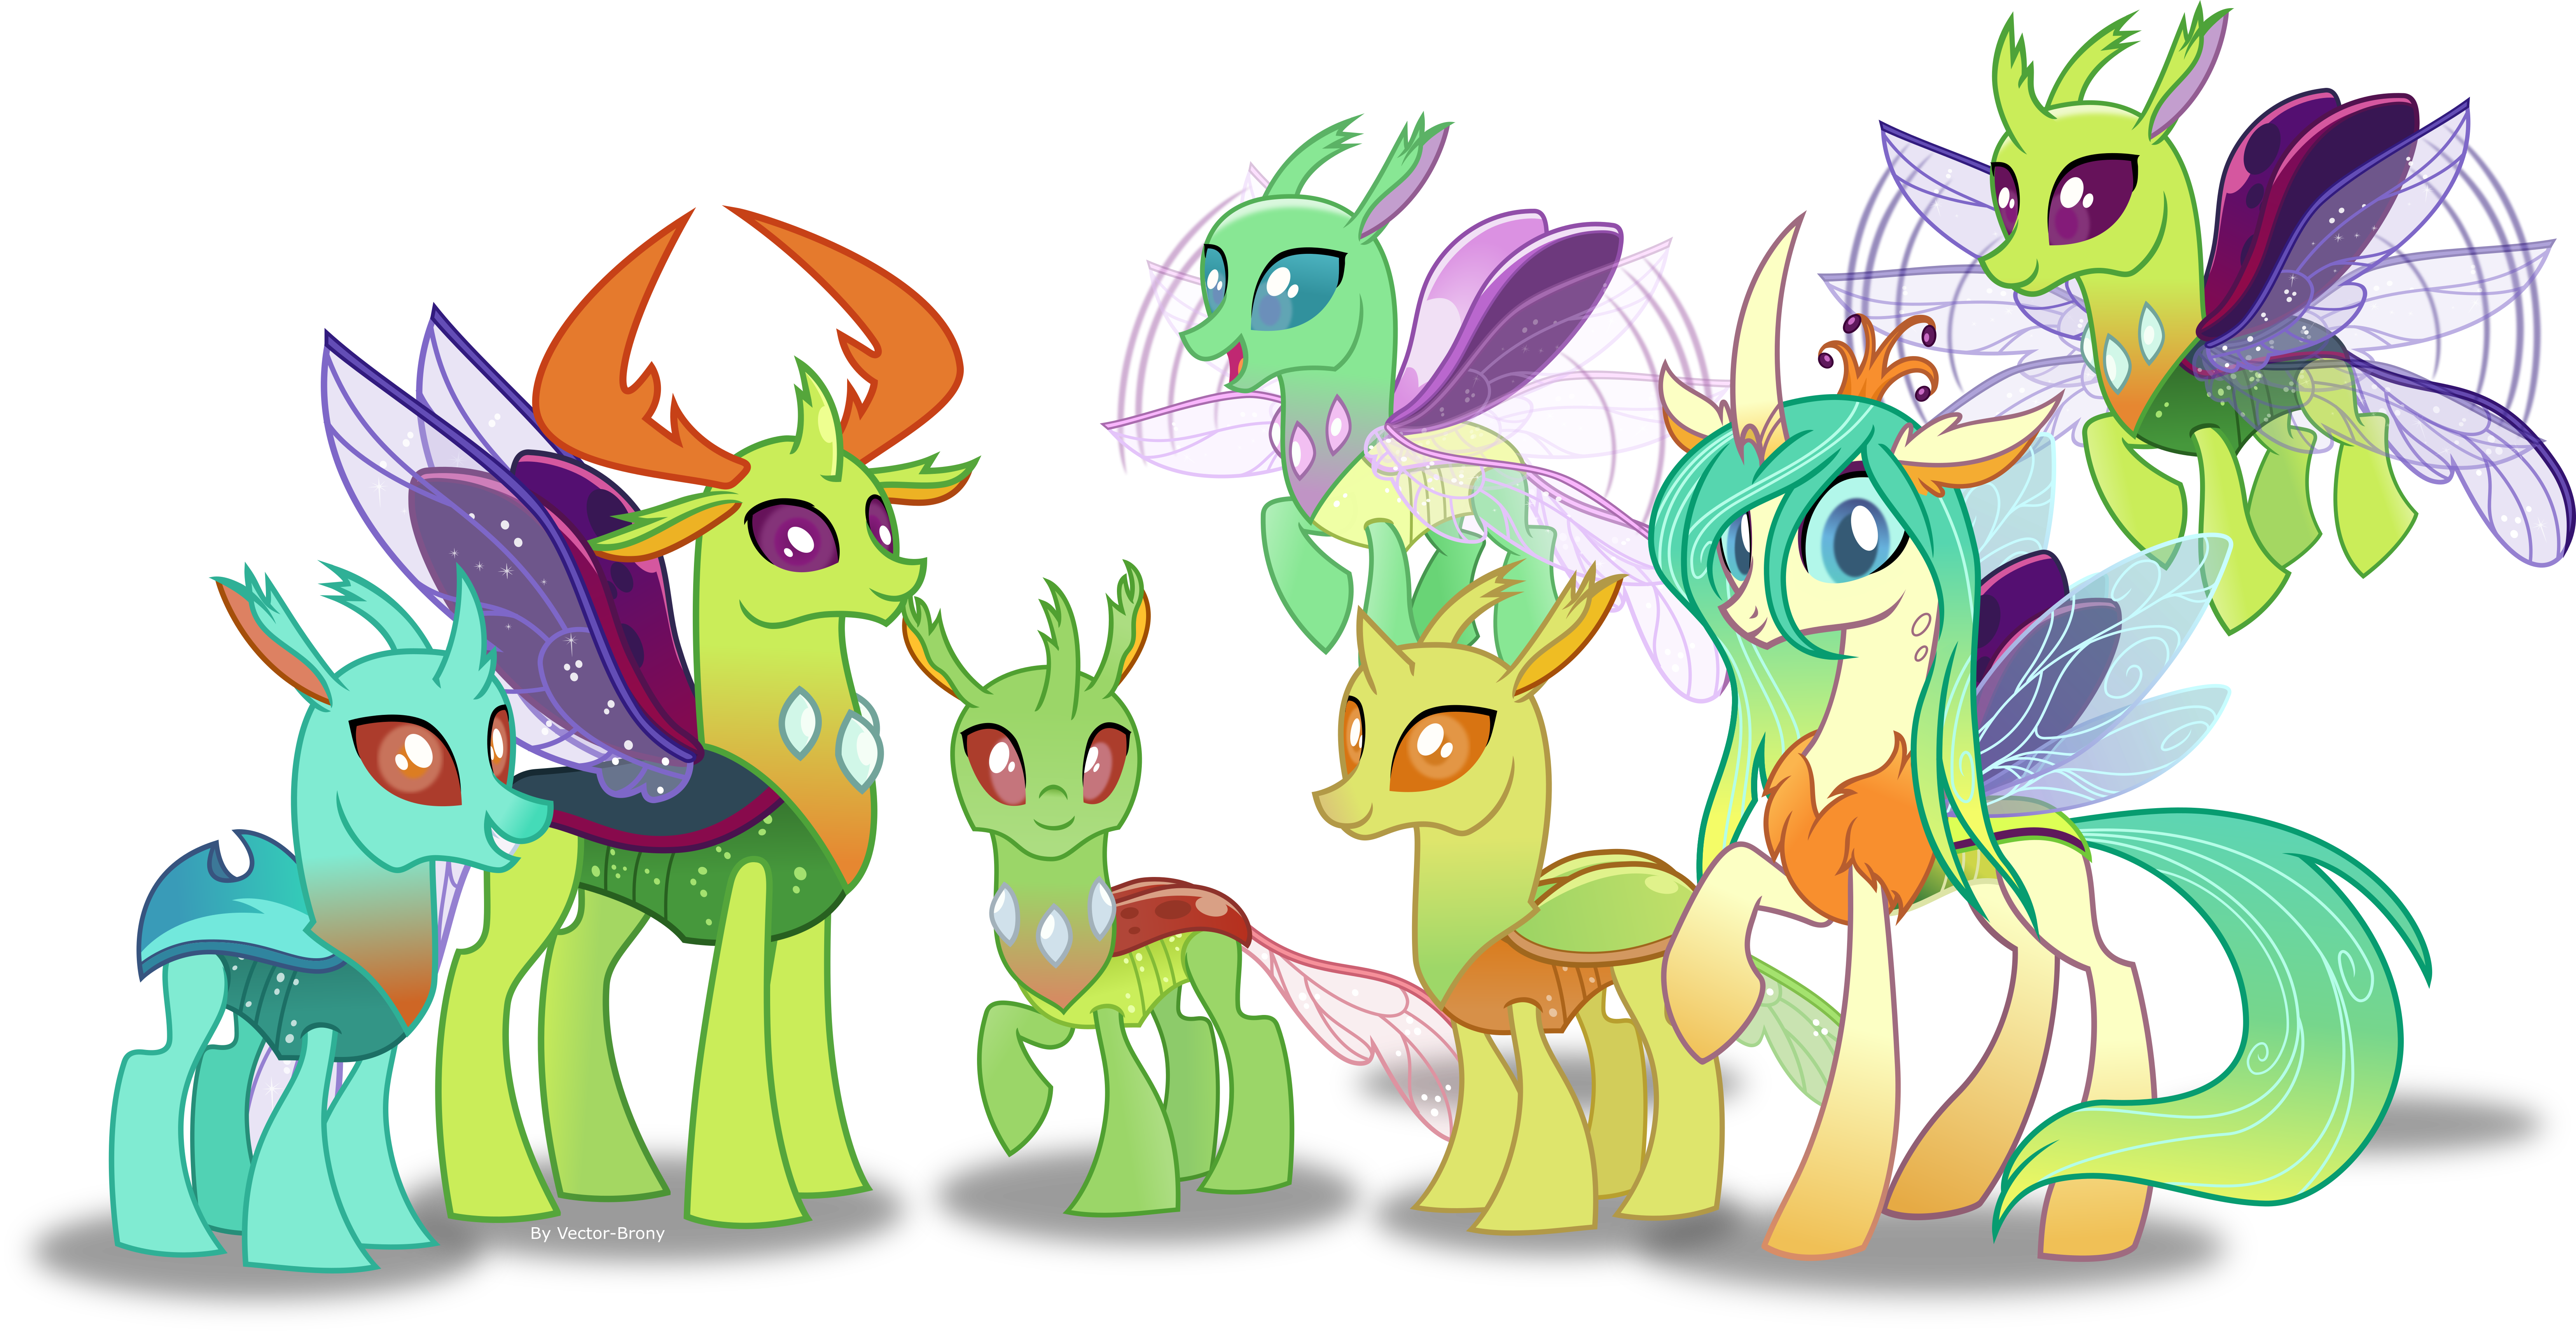 The Reformed Changelings By Vector Brony On DeviantArt